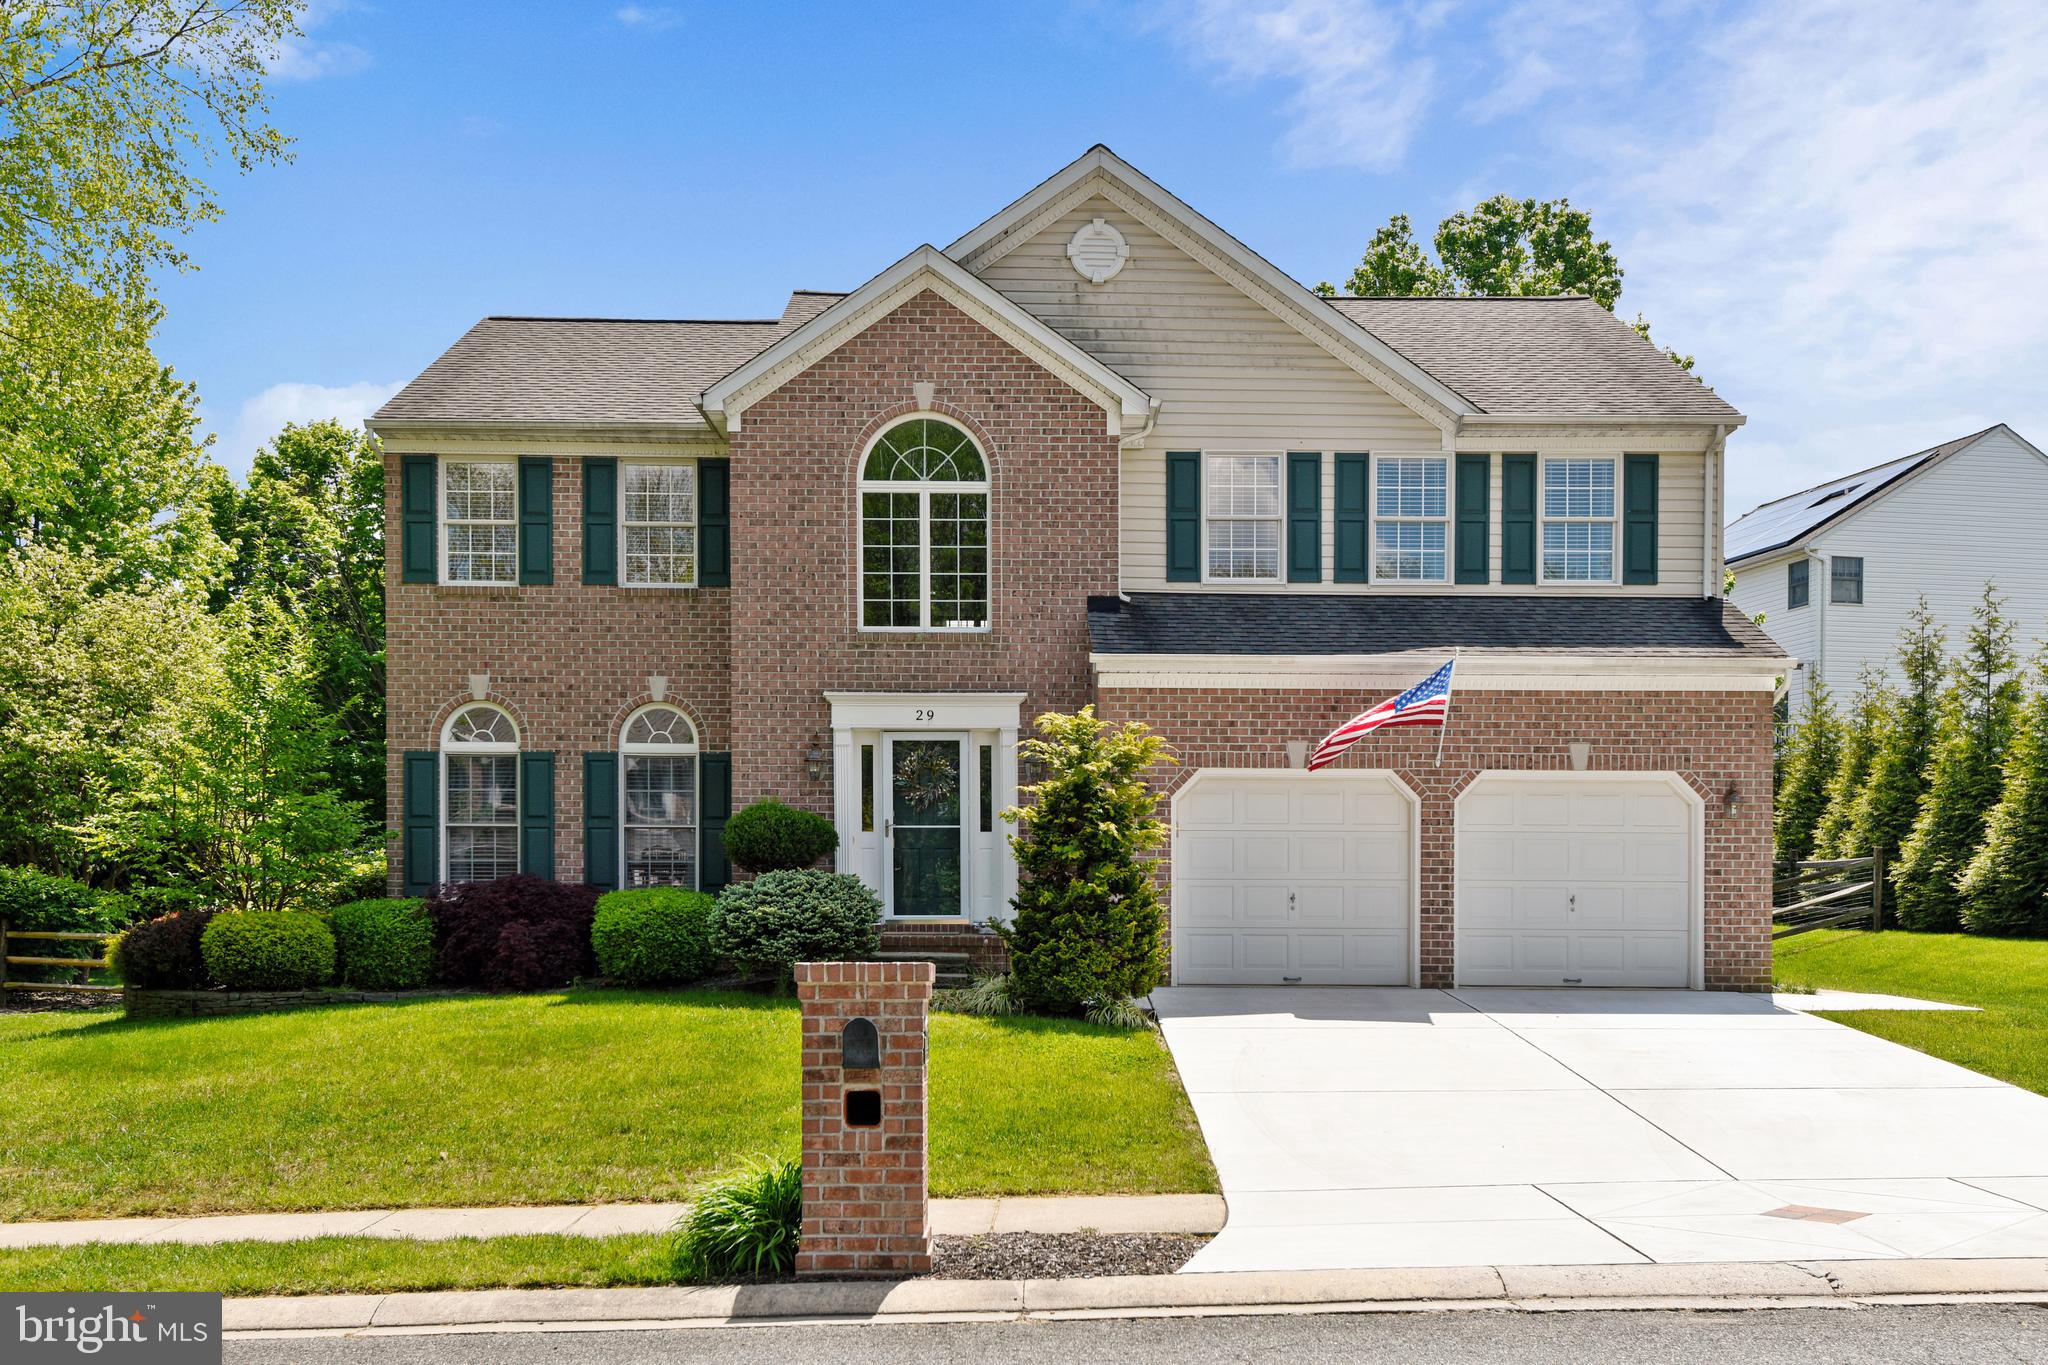 29 N Forest Drive, Forest Hill, MD 21050